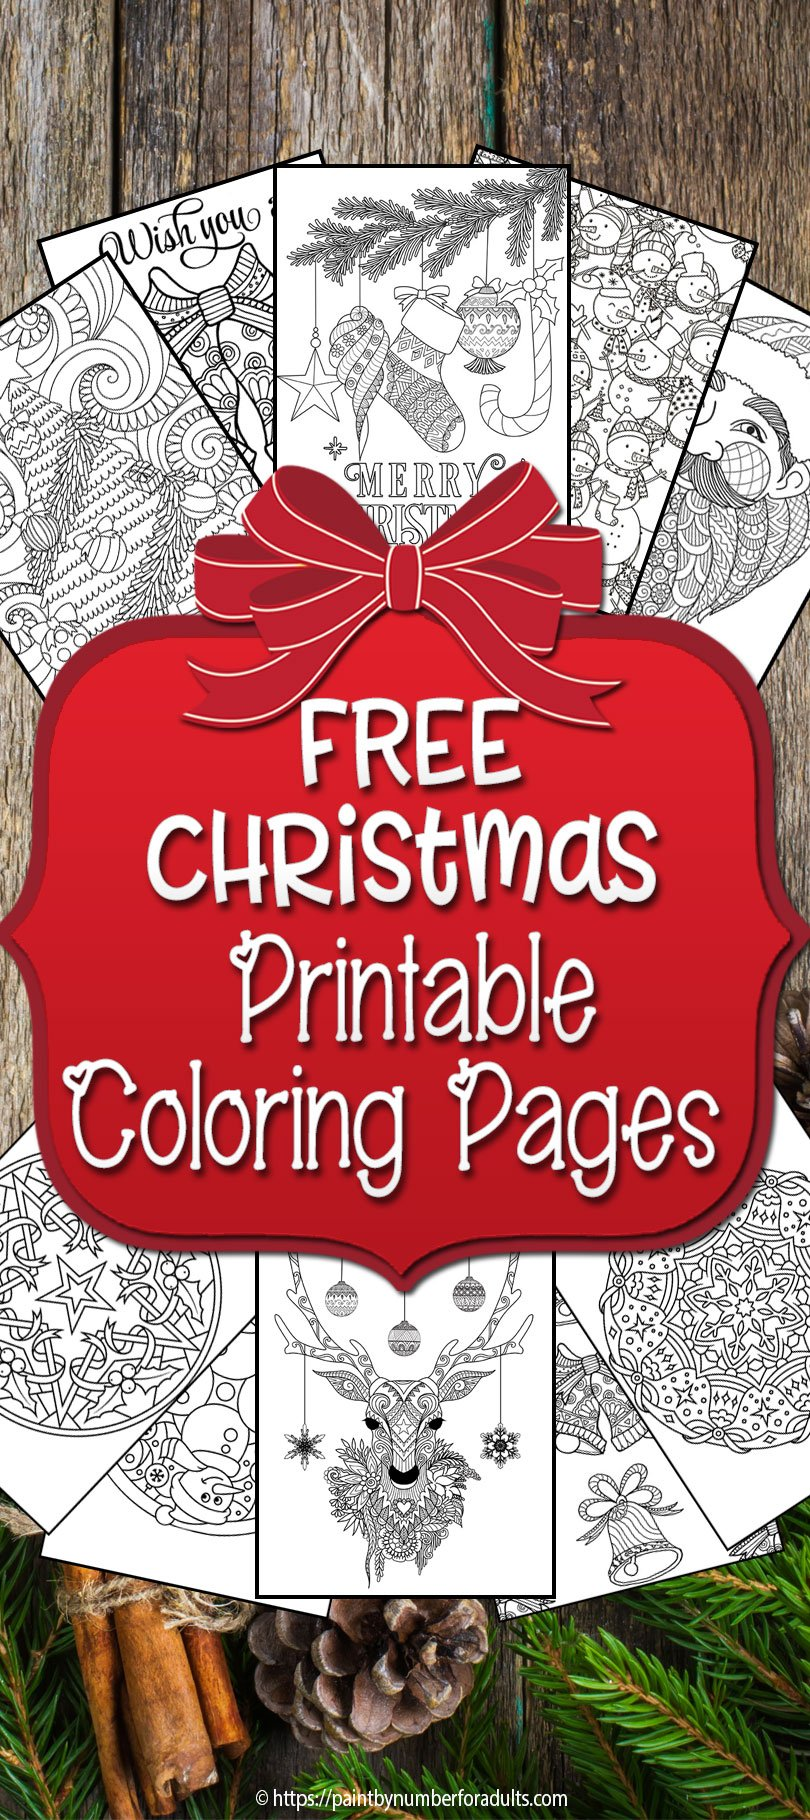 Free Printable Christmas Coloring Pages • Paint By Number ...